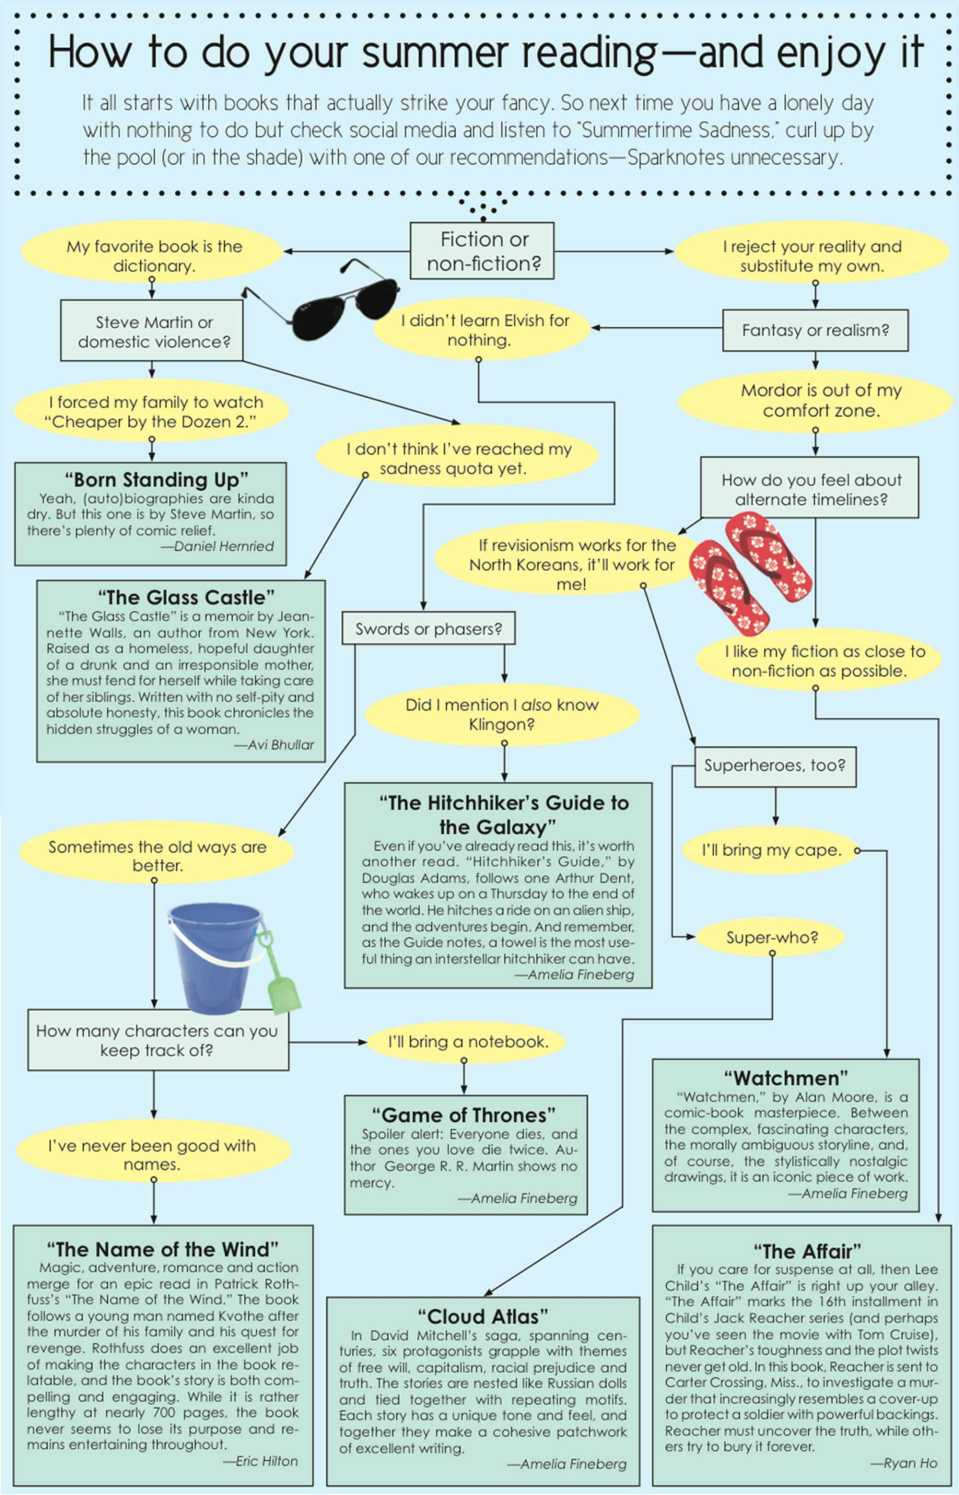 Summer reading flowchart